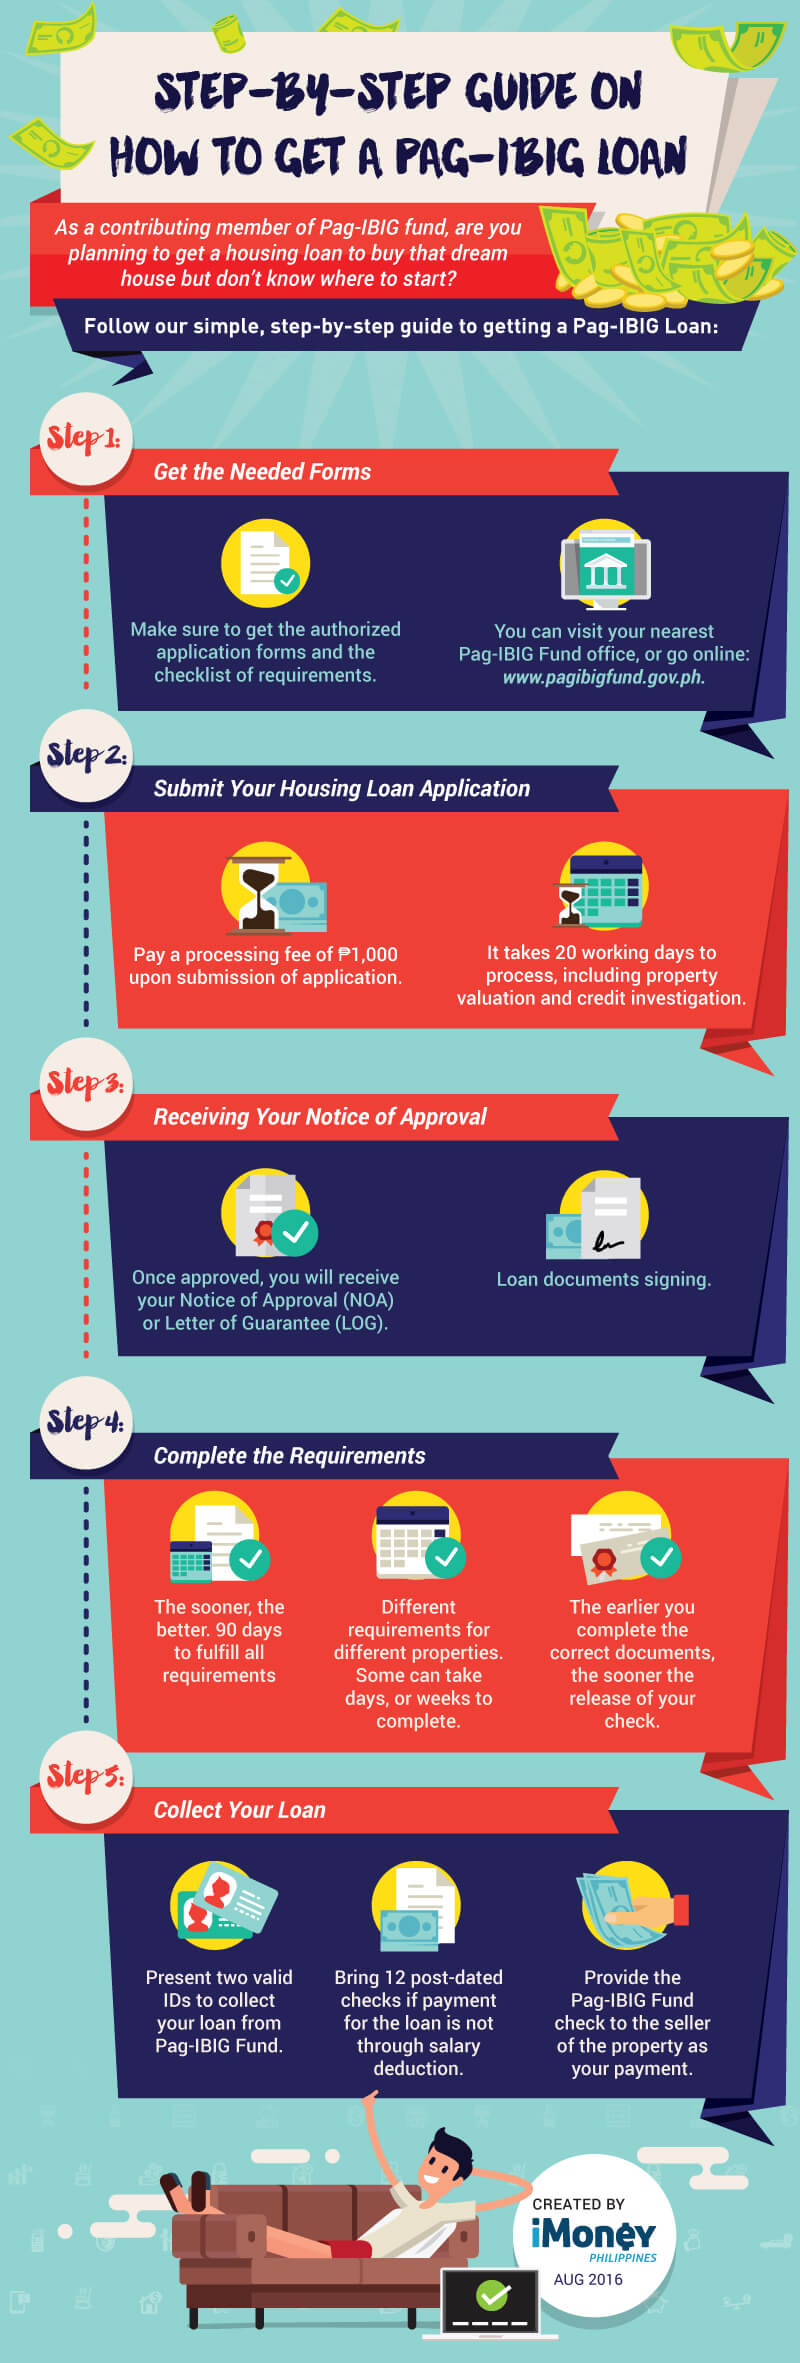 Infographic Guide on Getting a PAG-IBIG Loan image